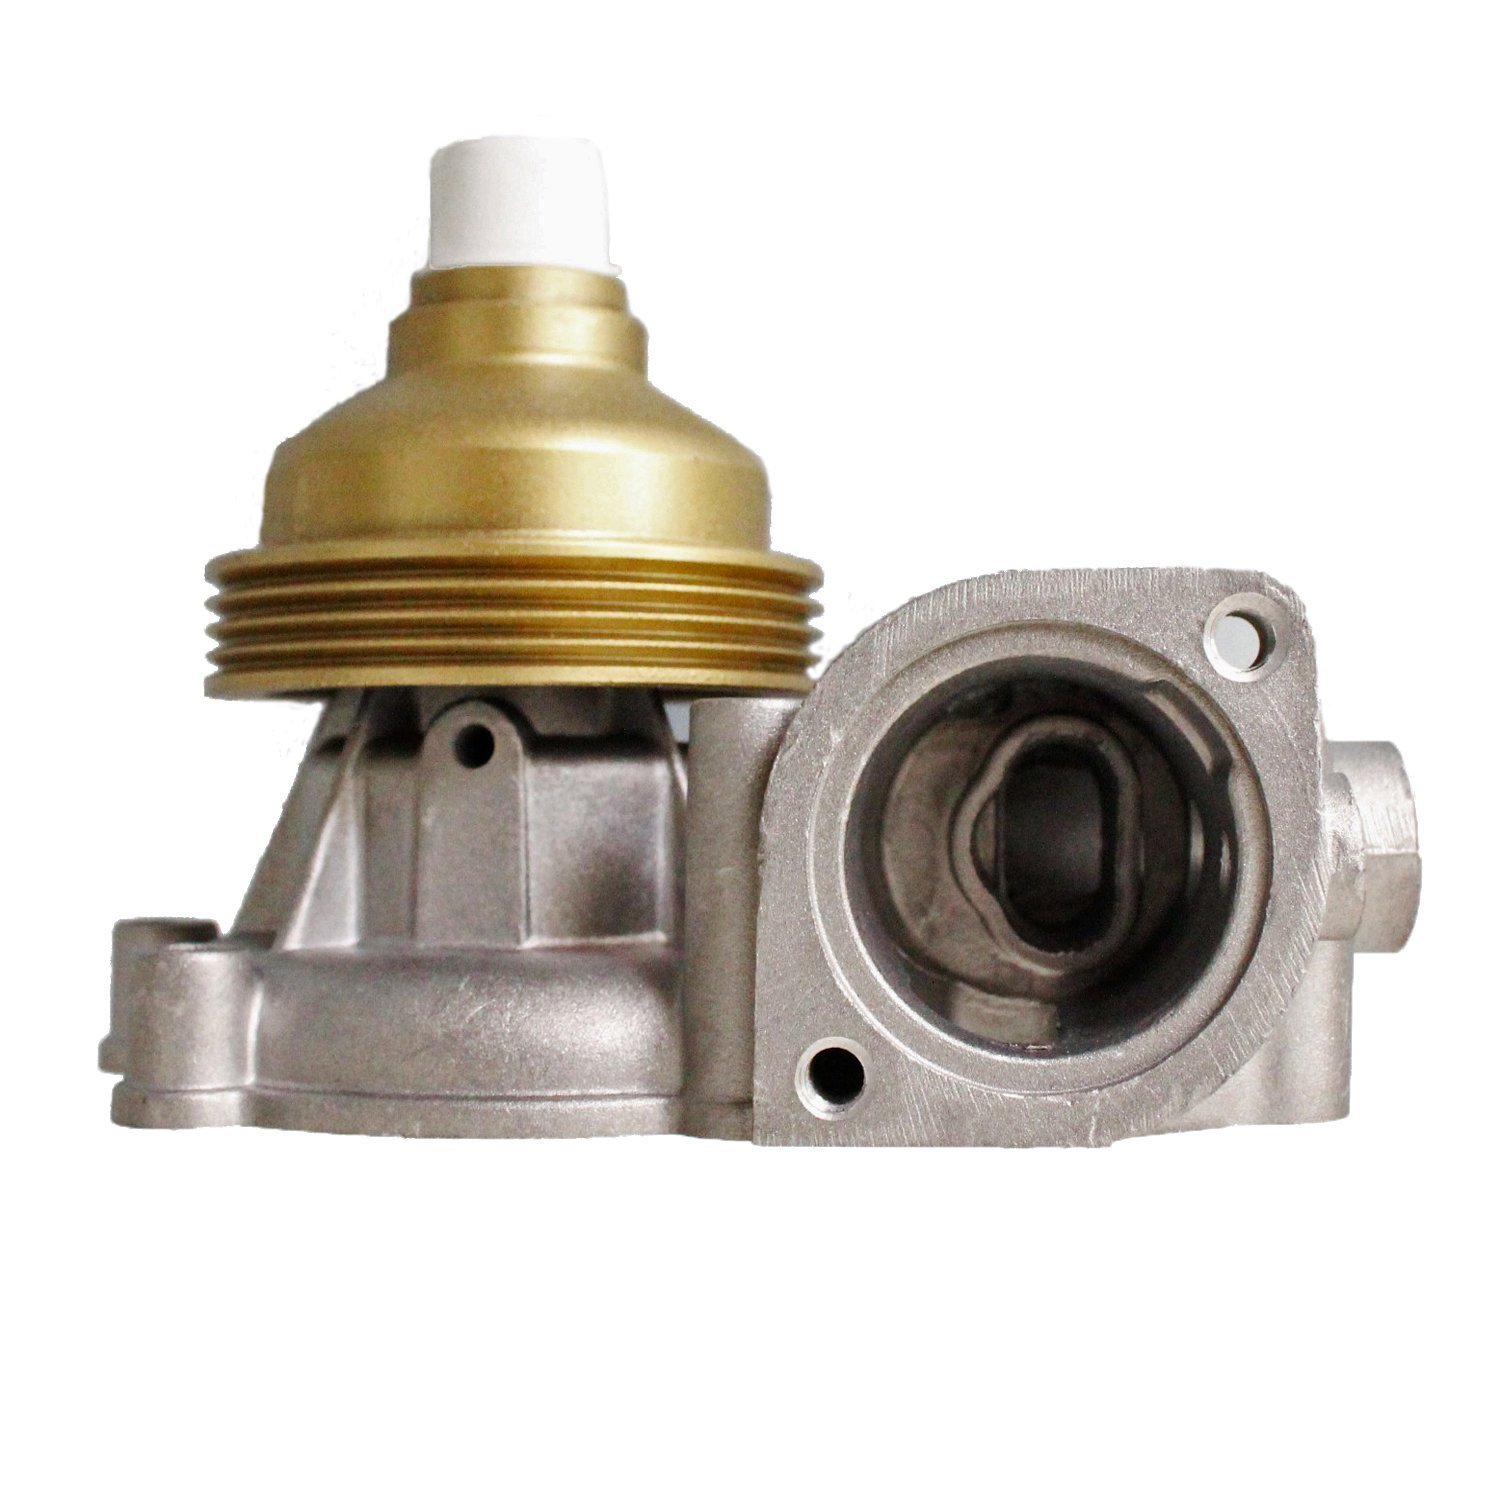 Friday Part Engine Genset Water Pump 751-41022 75141022 for Lister Petter Alpha LPW LPWS LPWT